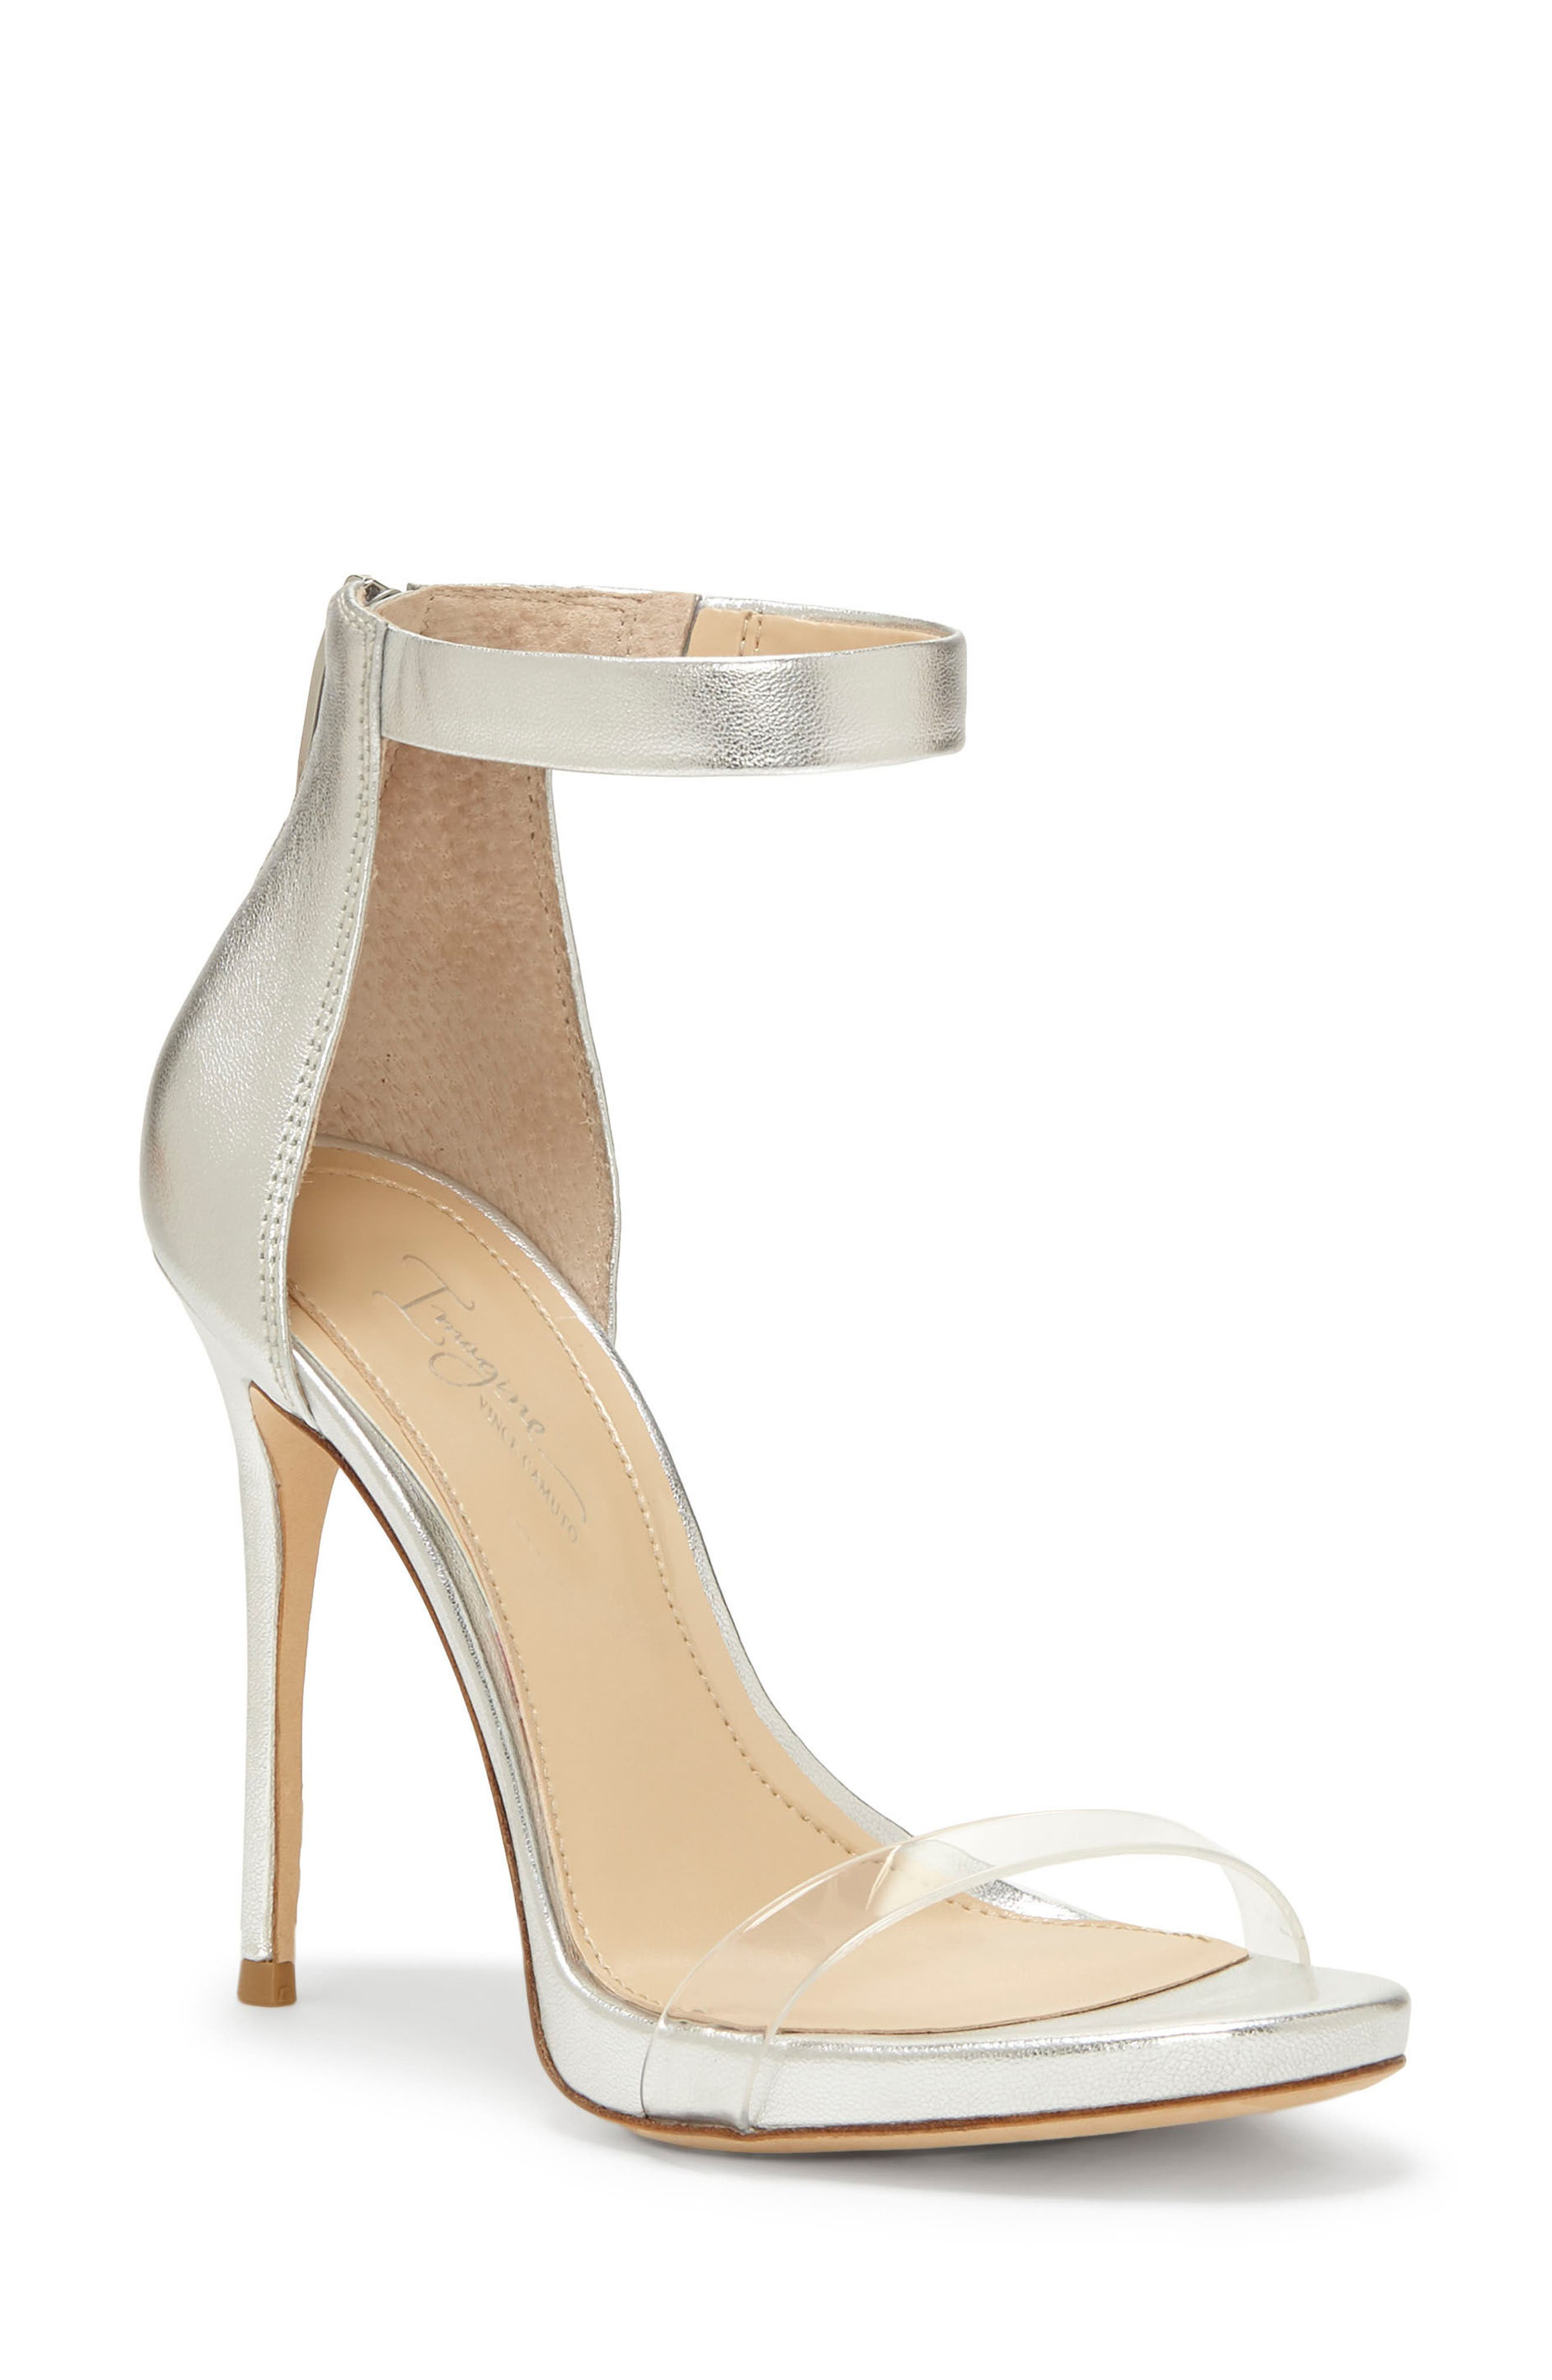 IMAGINE BY VINCE CAMUTO Imagine Vince Camuto Diva Sandal, Main, color, PLATINUM LEATHER